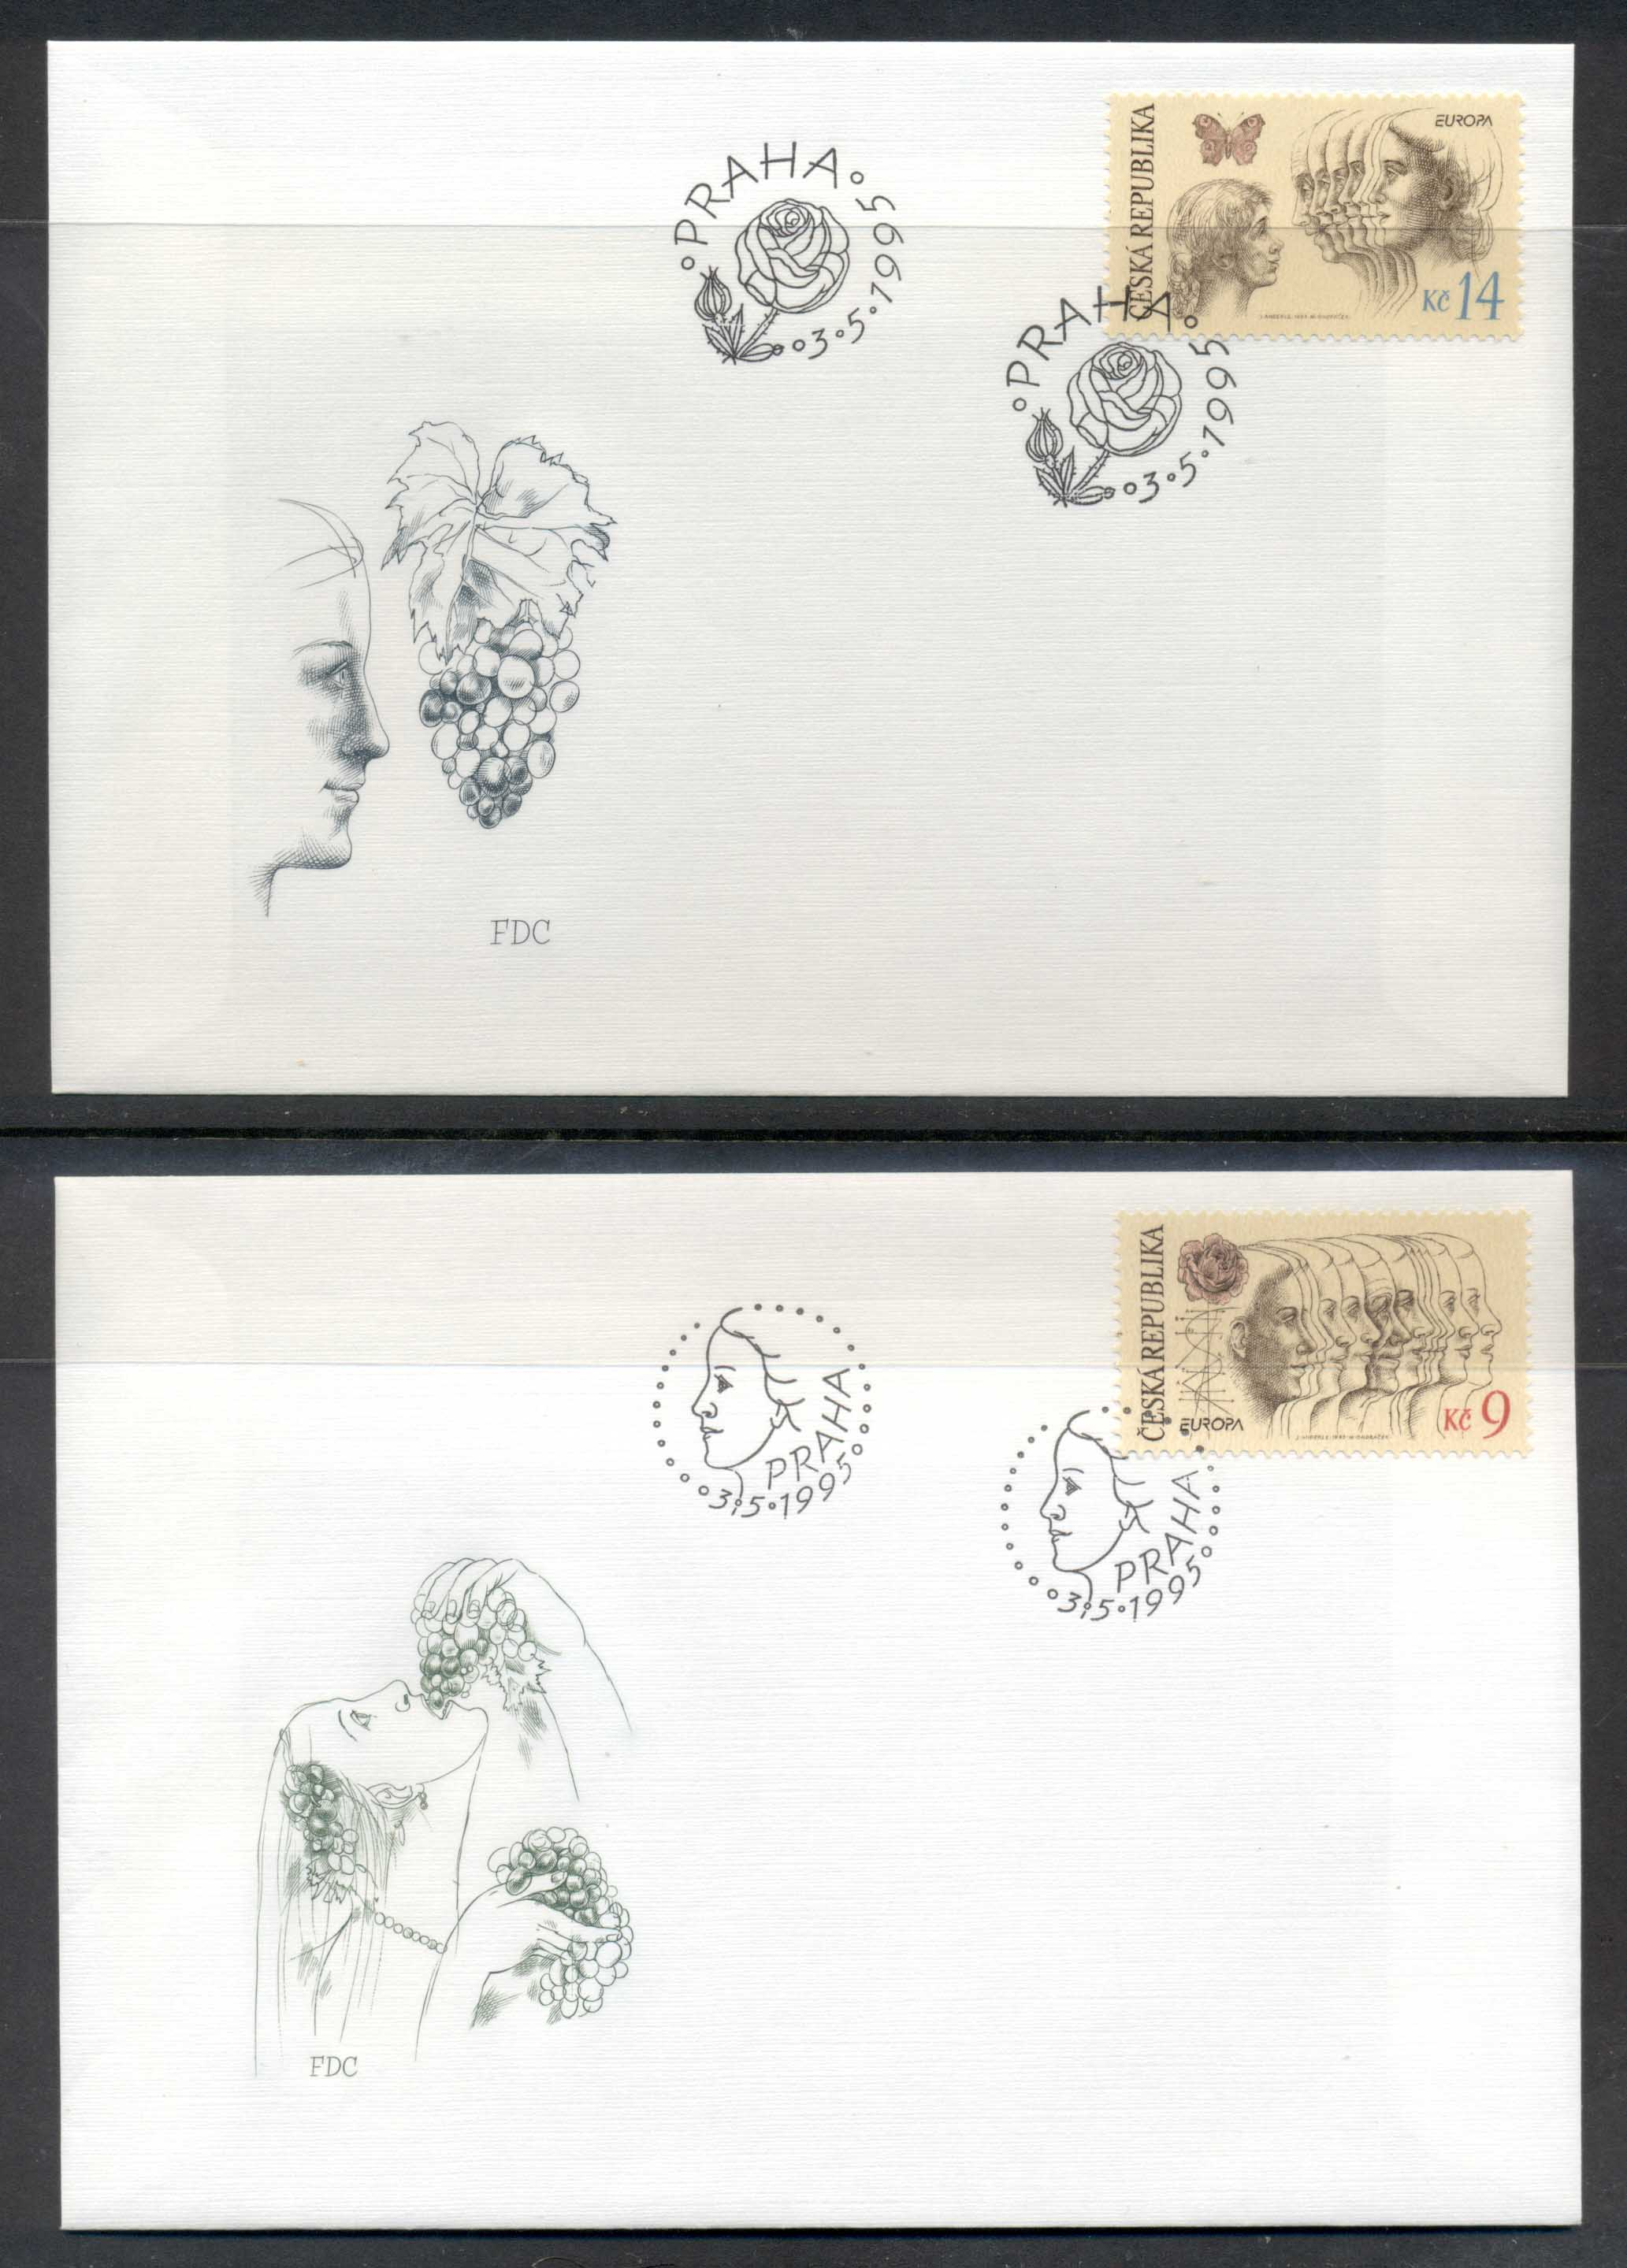 Czech Republic 1995 Europa Peace & Freedom FDC